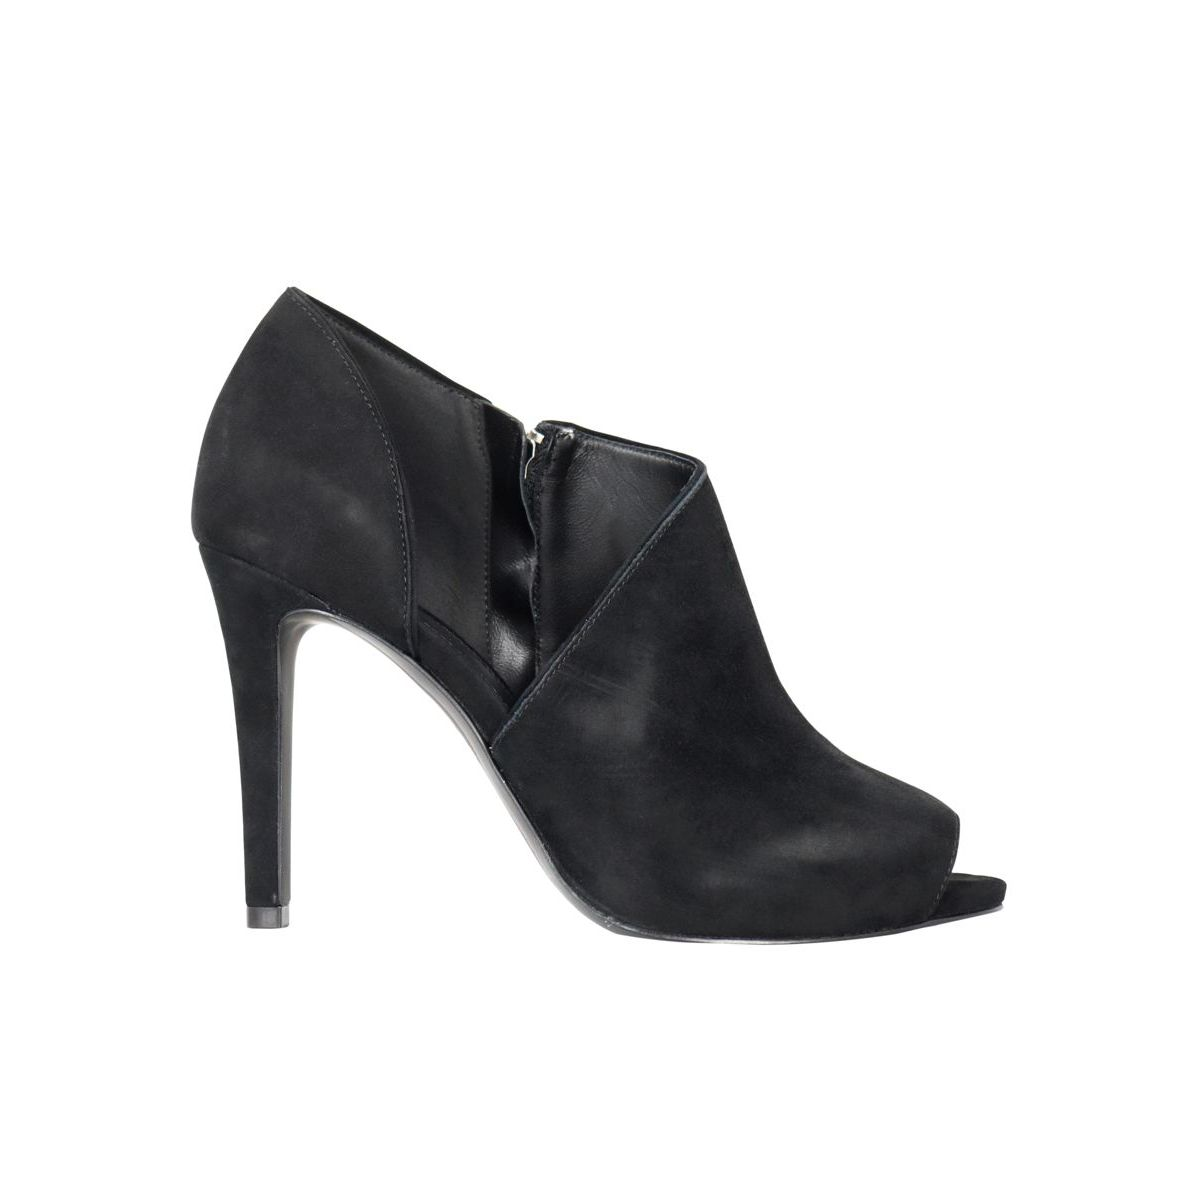 Elodie Bottie boots Black Michael Kors